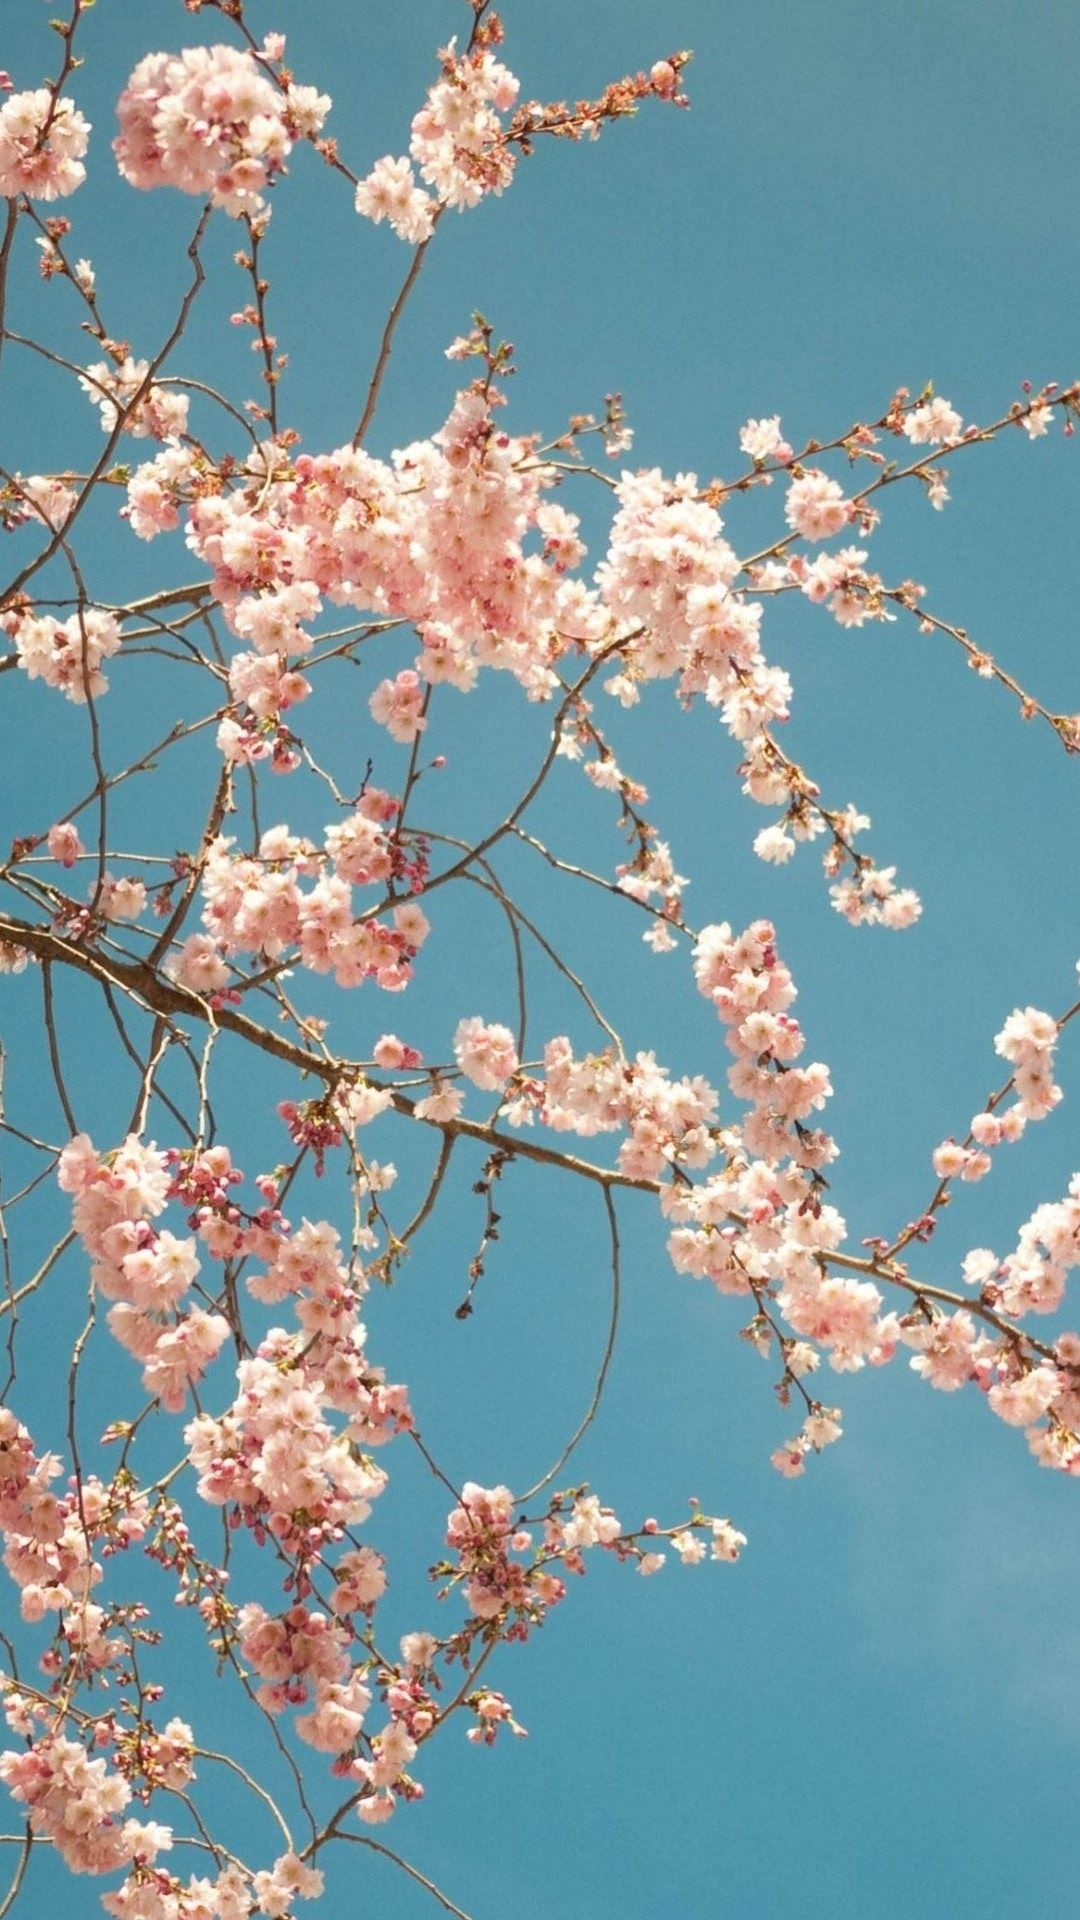 Cherry Blossom Tree Best Htc Wallpapers Iphone Spring Wallpaper Cherry Blossom Wallpaper Hd Cool Wallpapers